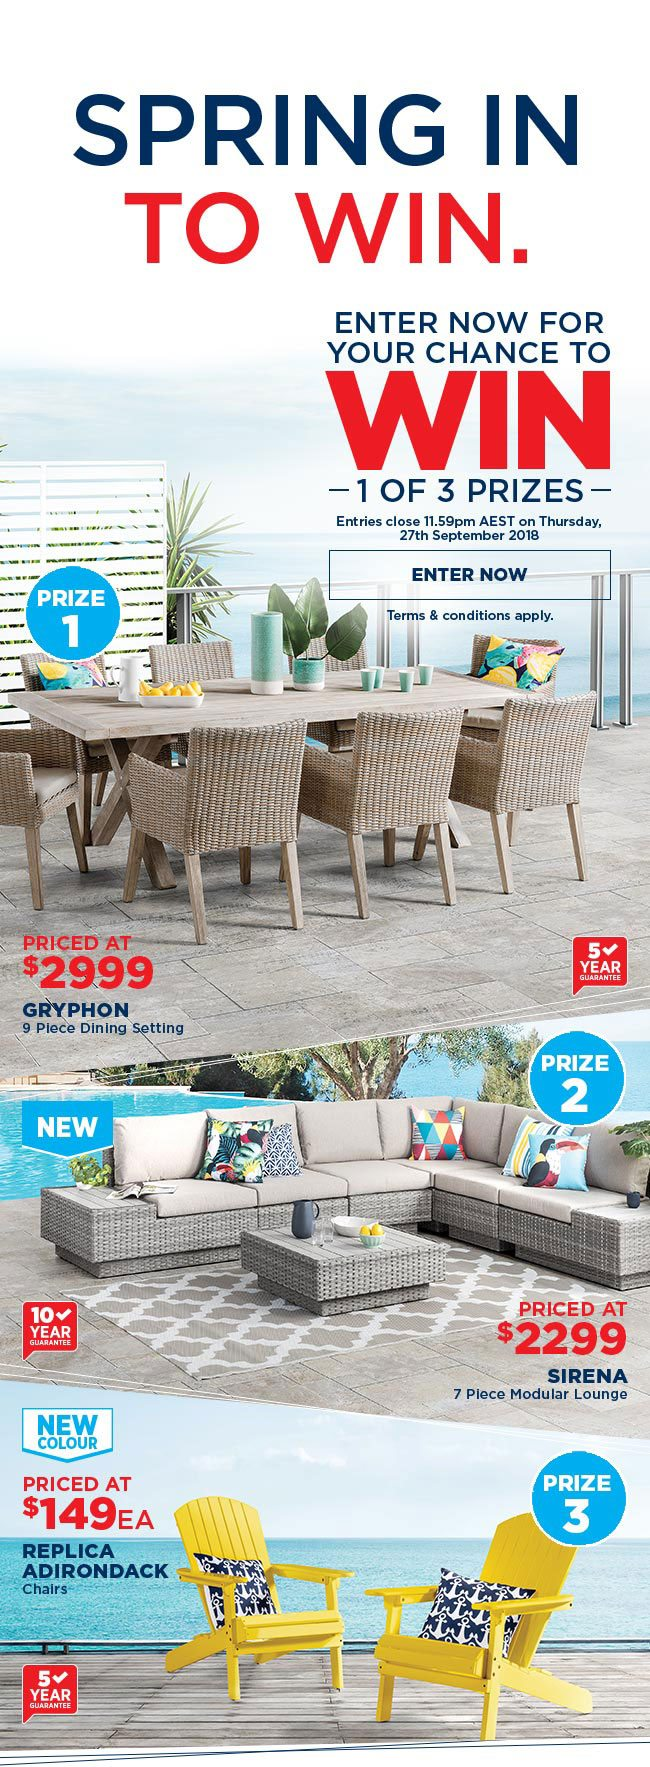 Spring In To Win 1 Of 3 Outdoor Furniture Prizes Amart Furniture